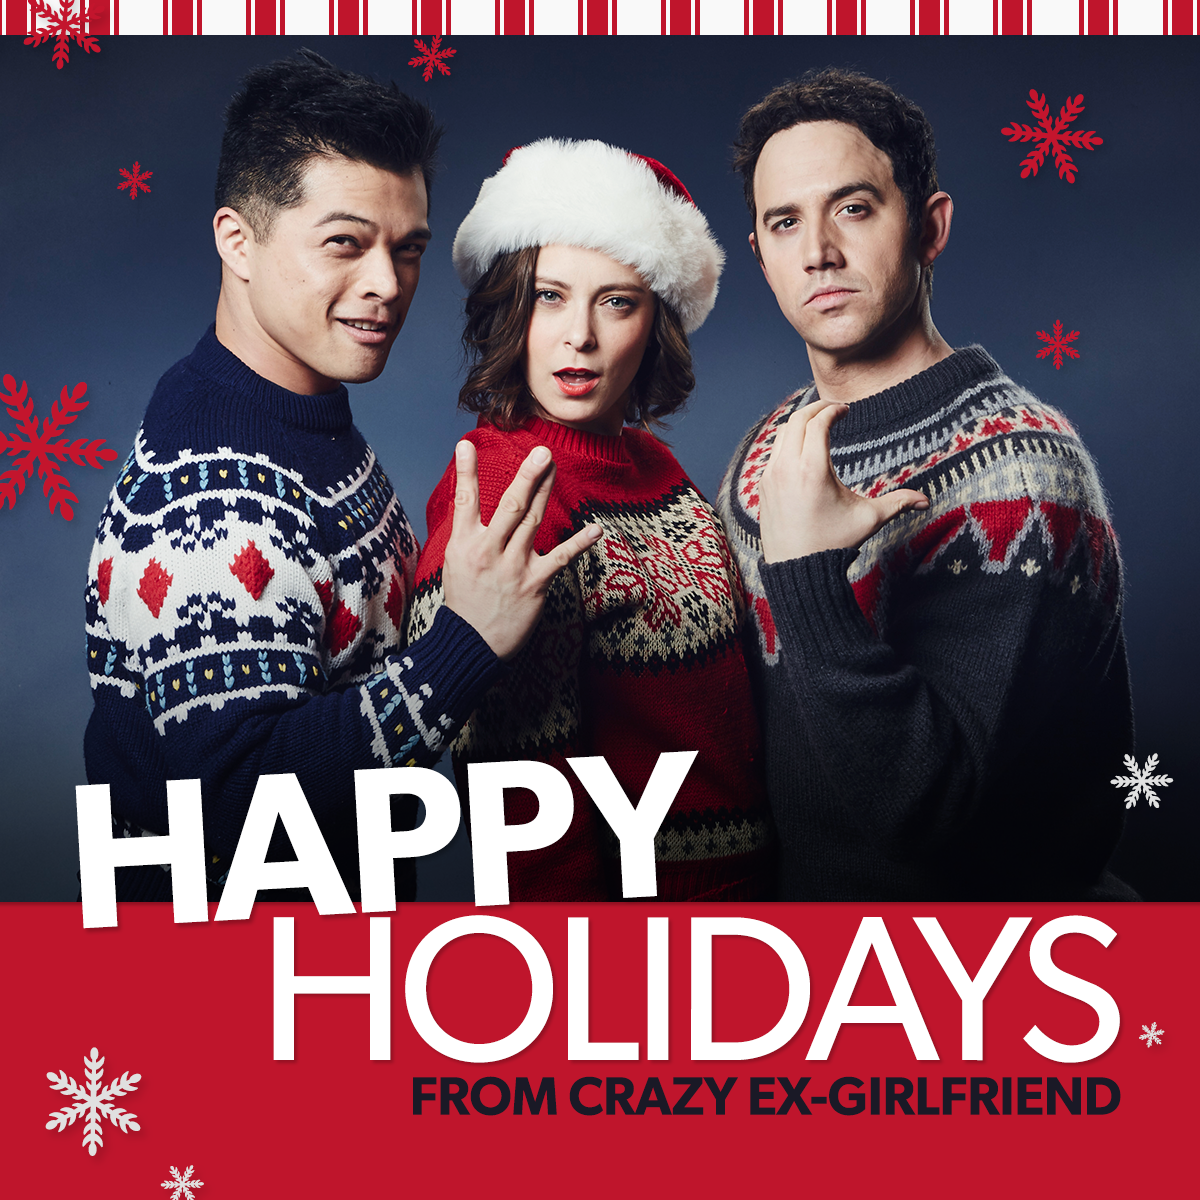 Give the gift of crazy ex girlfriend this holiday season and turn books m4hsunfo